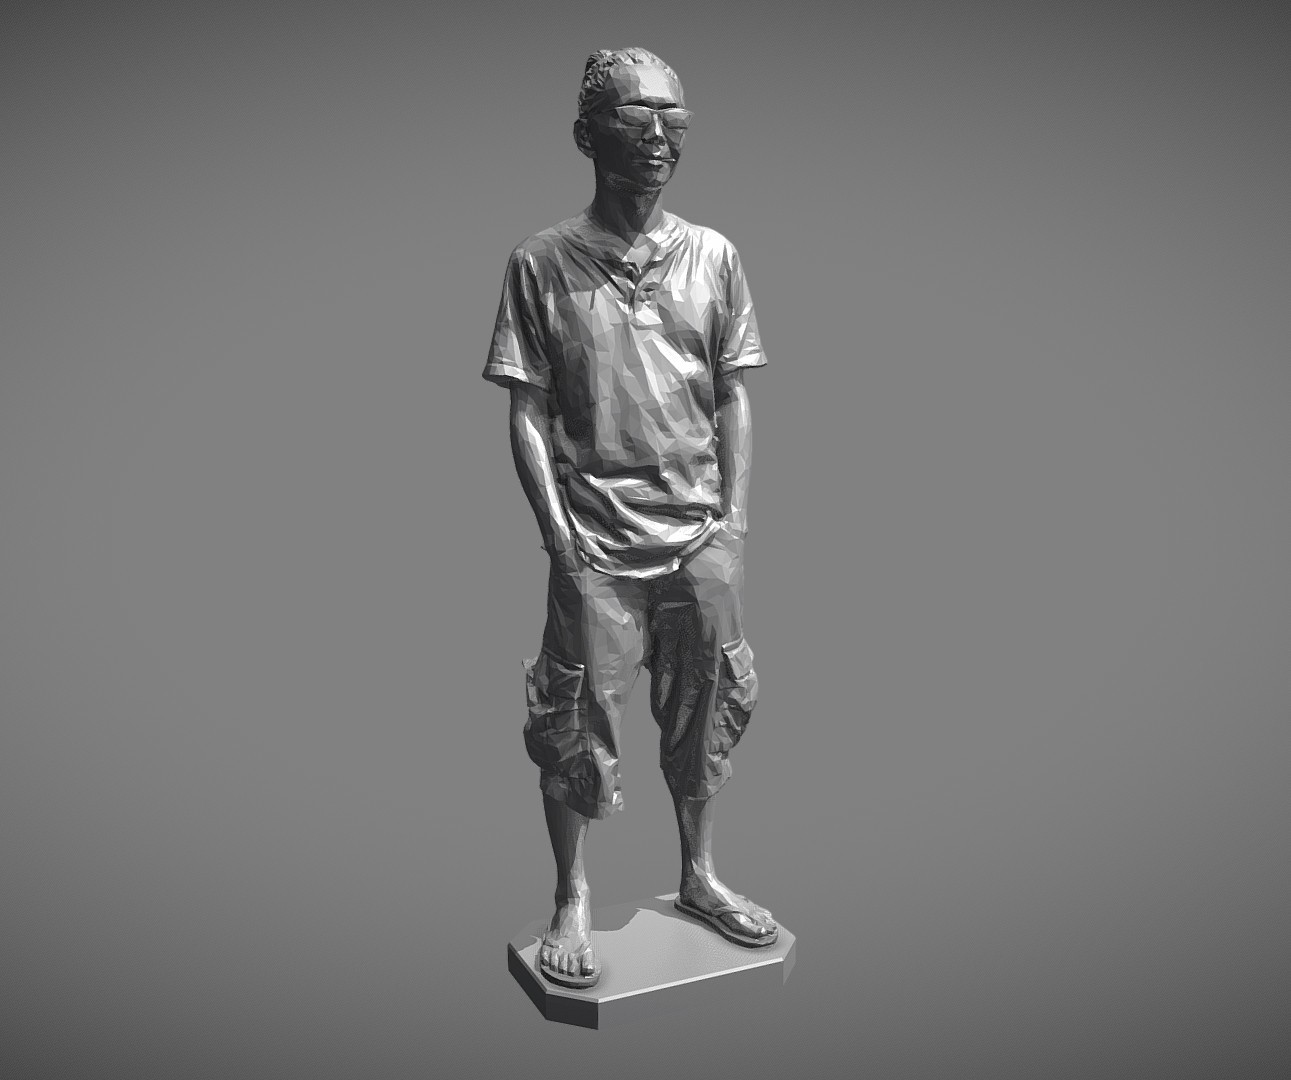 3D models by mwopus (@mwopus) - Sketchfab20190320-007955.jpg Download STL file MW 3D printing test-Low,Medium,High • Template to 3D print, MWopus